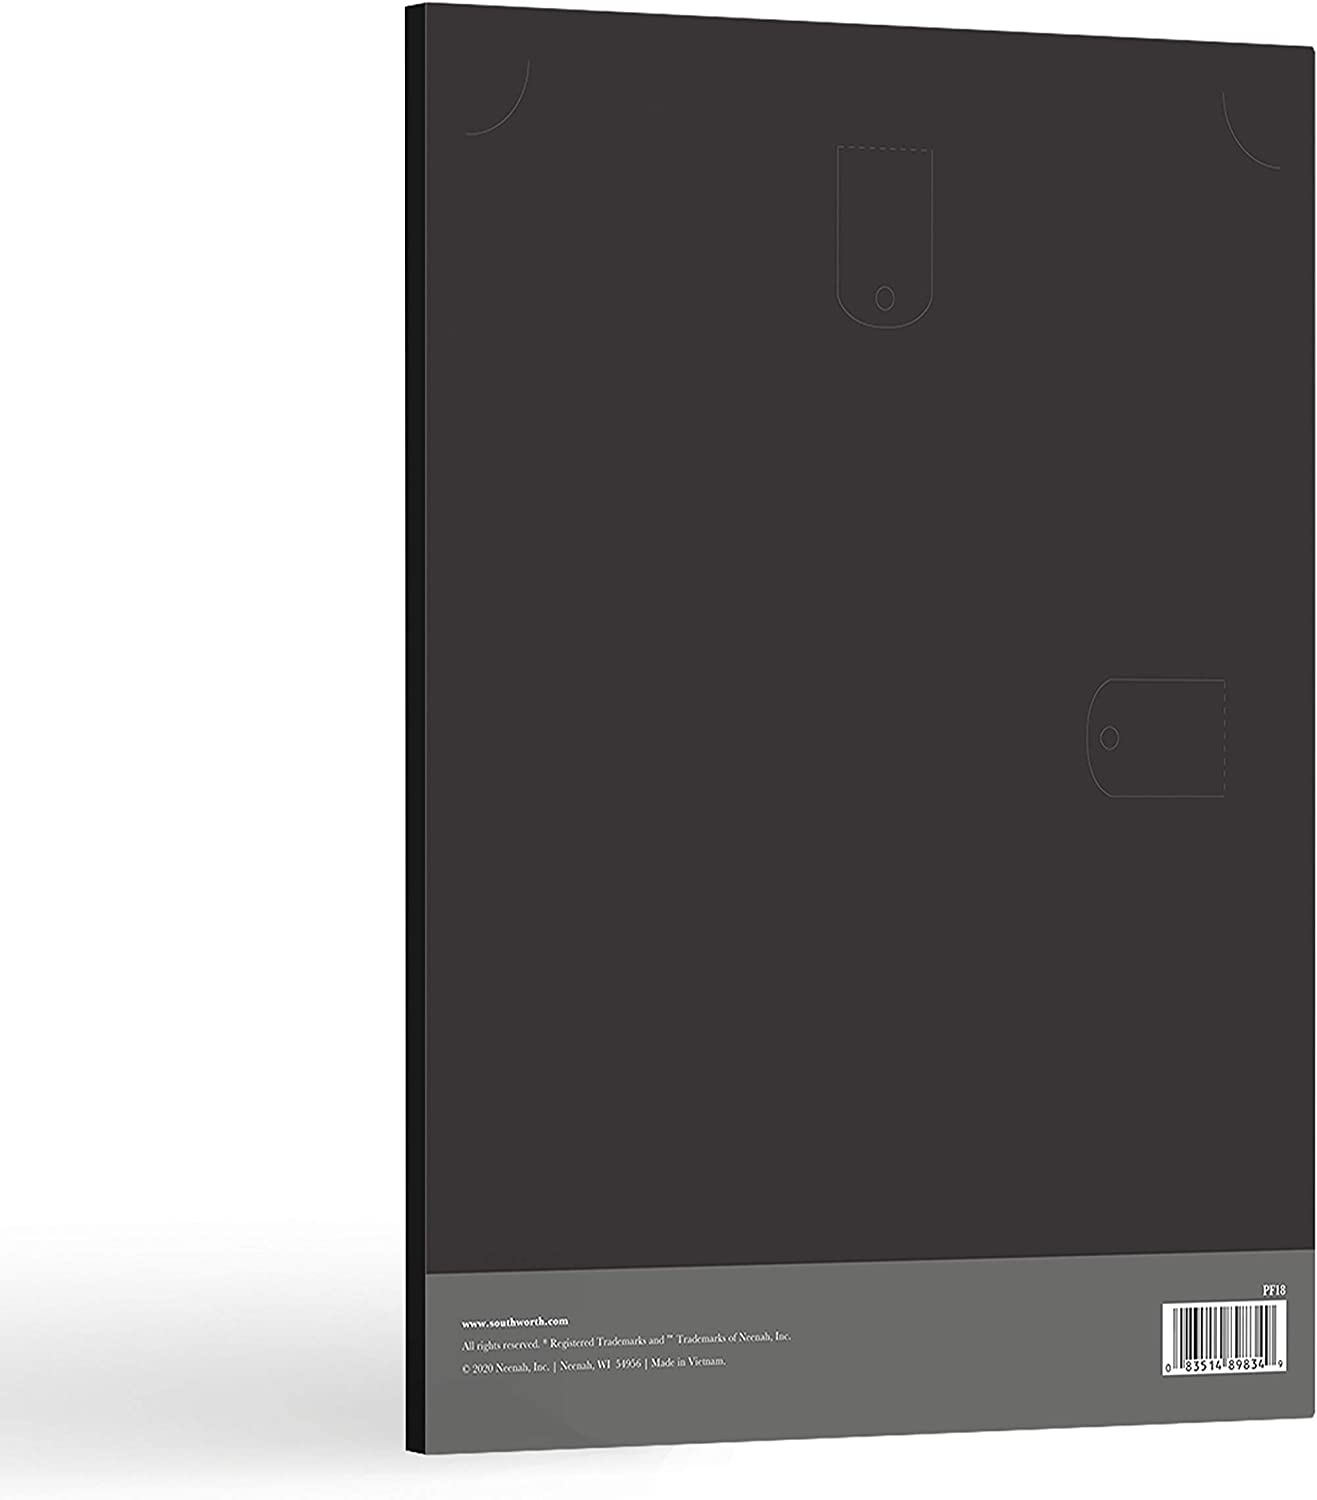 105 lb 9.5 x 12 Black Linen Finish PF18 Southworth Certificate Holder Packaging May Vary 10 Count